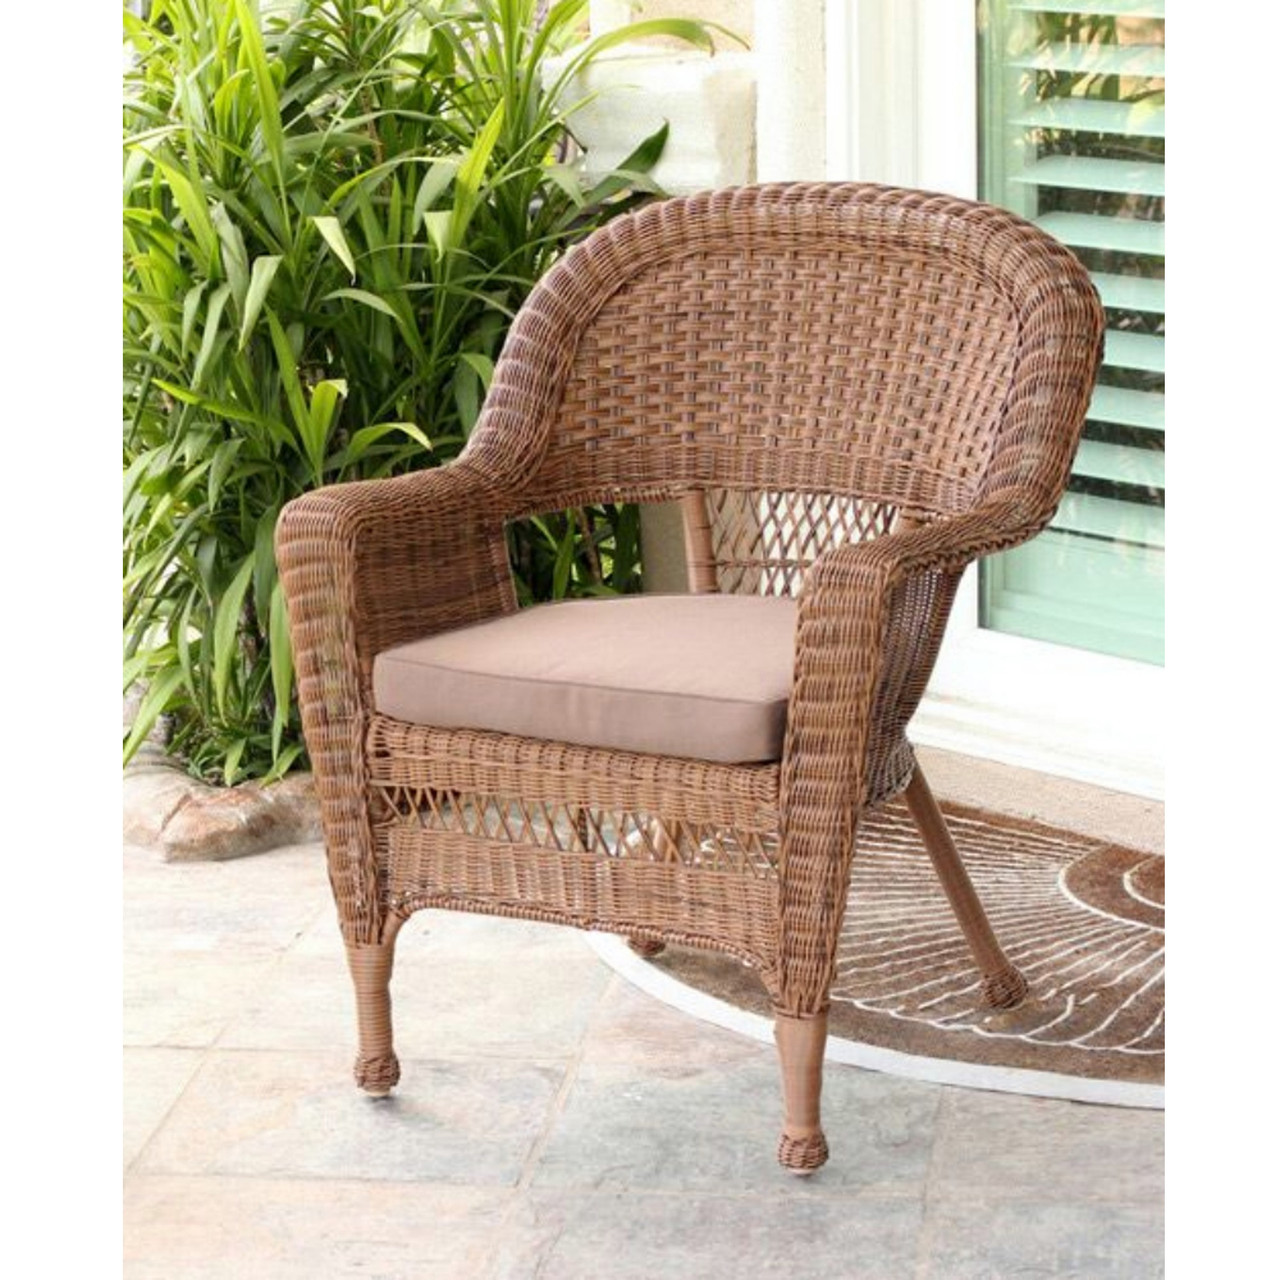 Brilliant 36 Honey Resin Wicker Outdoor Patio Garden Chair Brown Cushion 31556170 Lamtechconsult Wood Chair Design Ideas Lamtechconsultcom